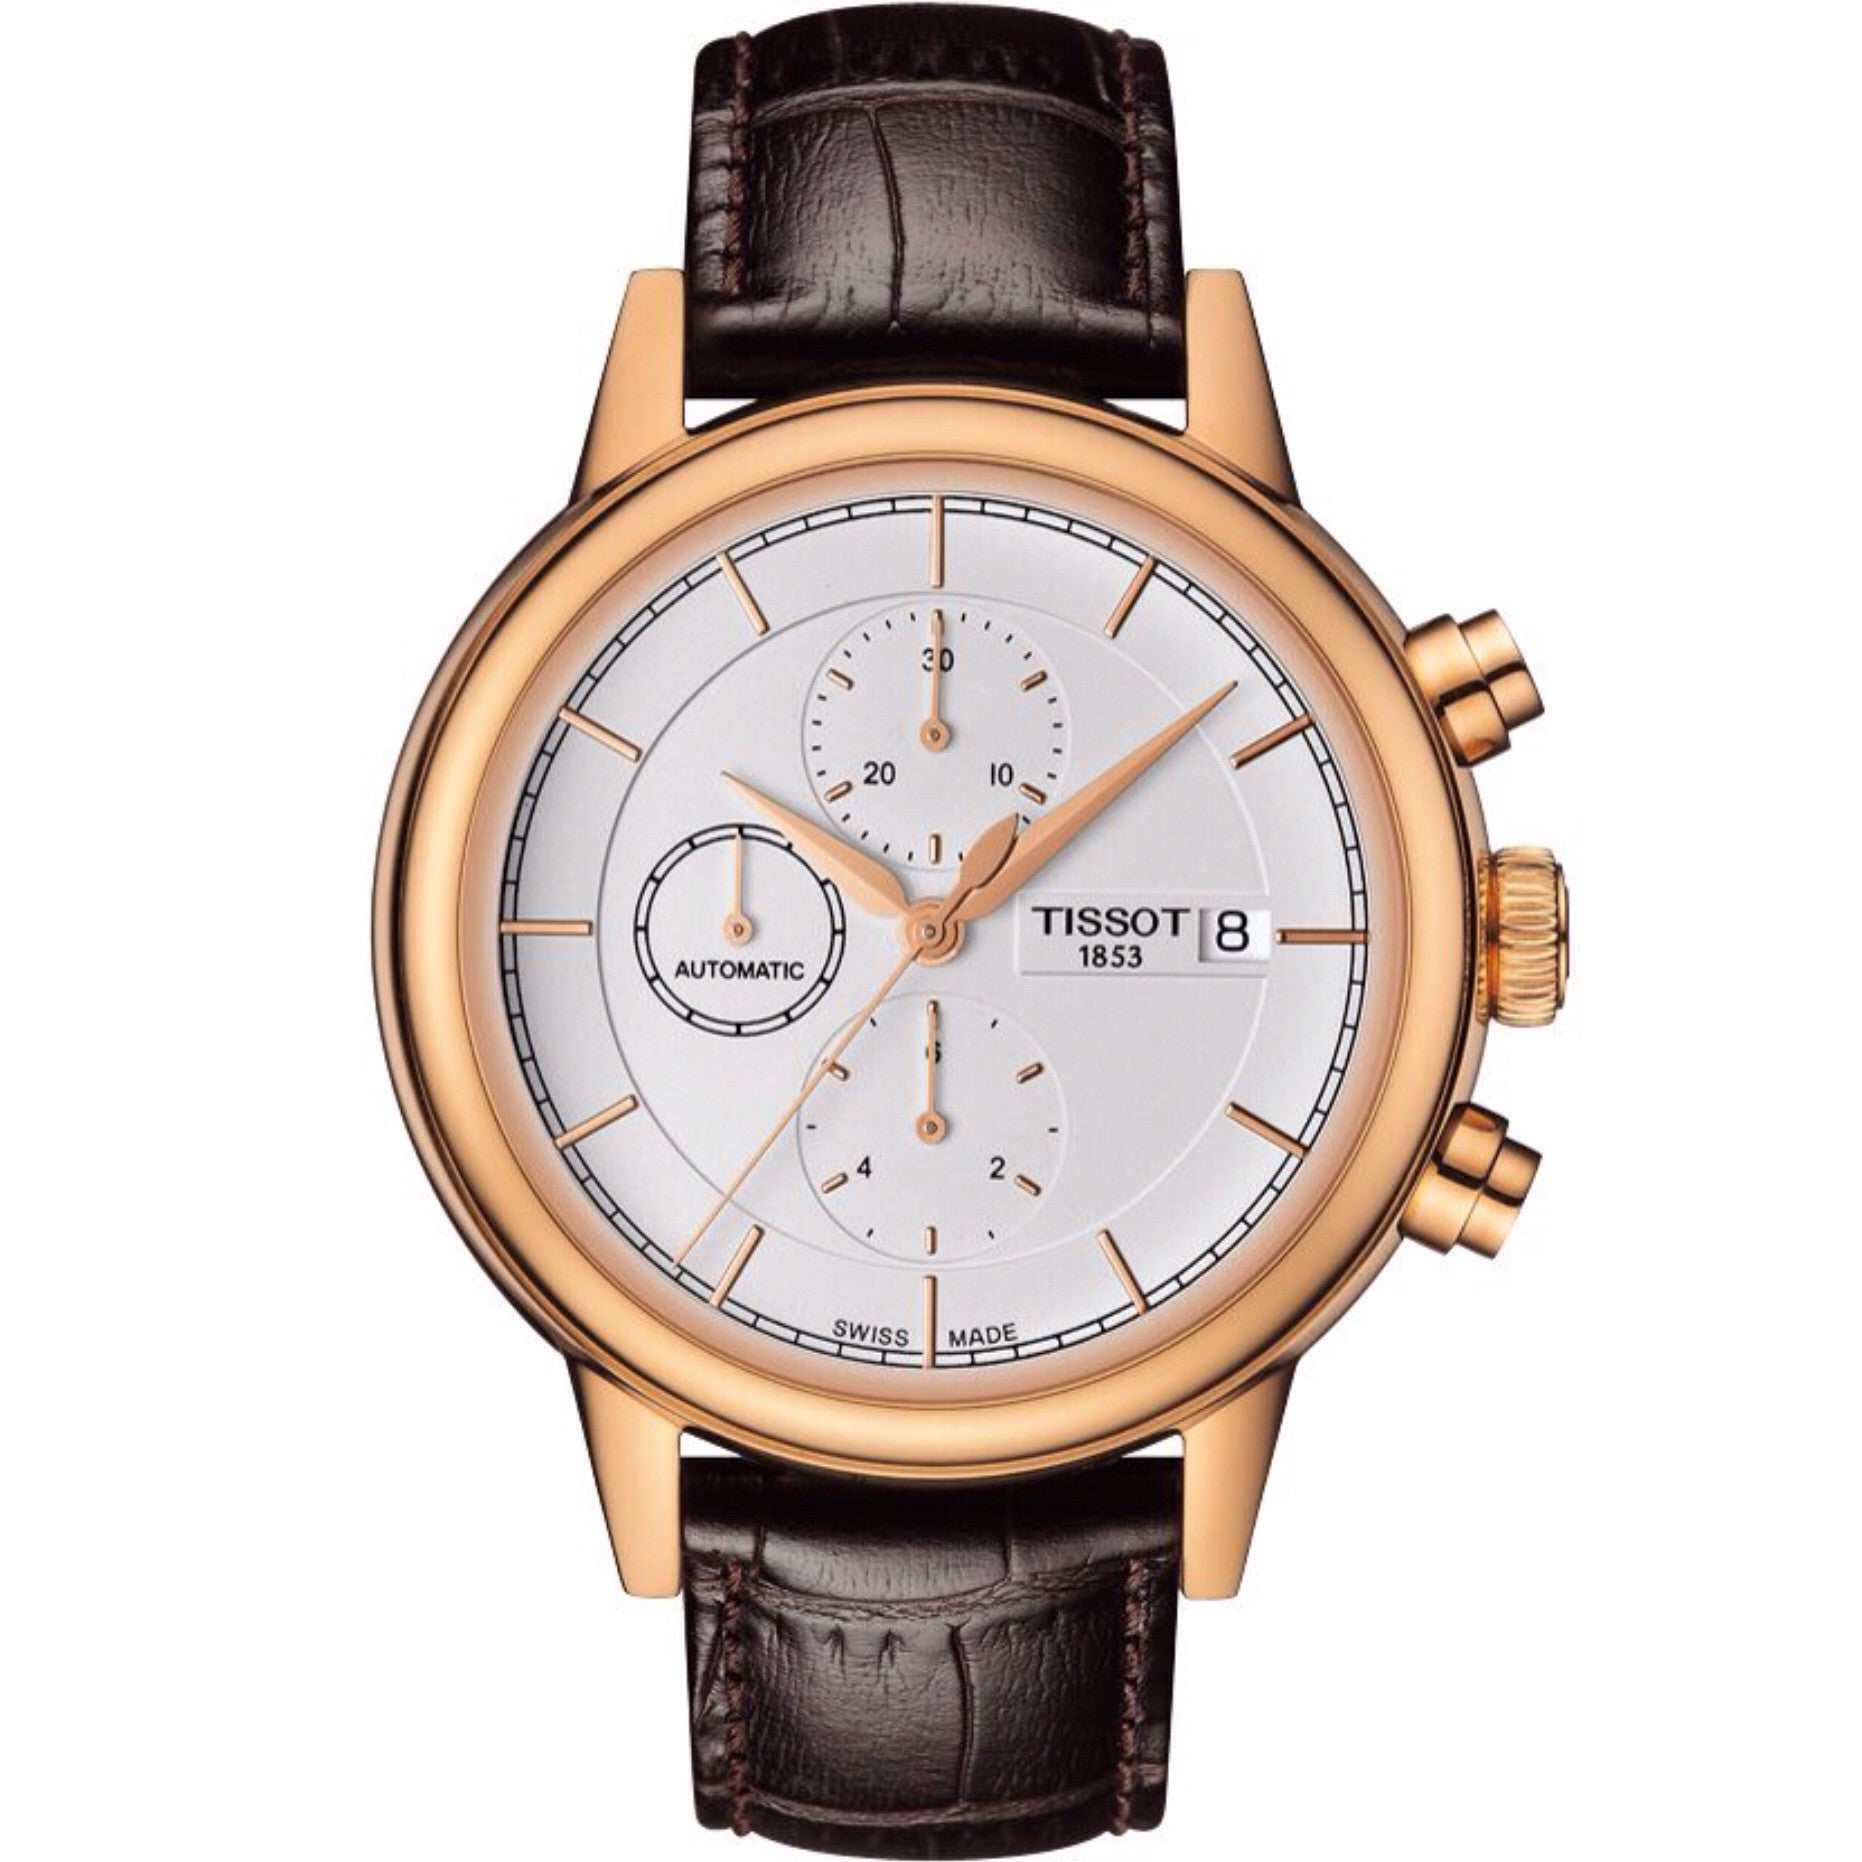 Tissot Carson Men's Automatic Chrono Rose Gold PVD Case White Dial Watch with Brown Leather Strap